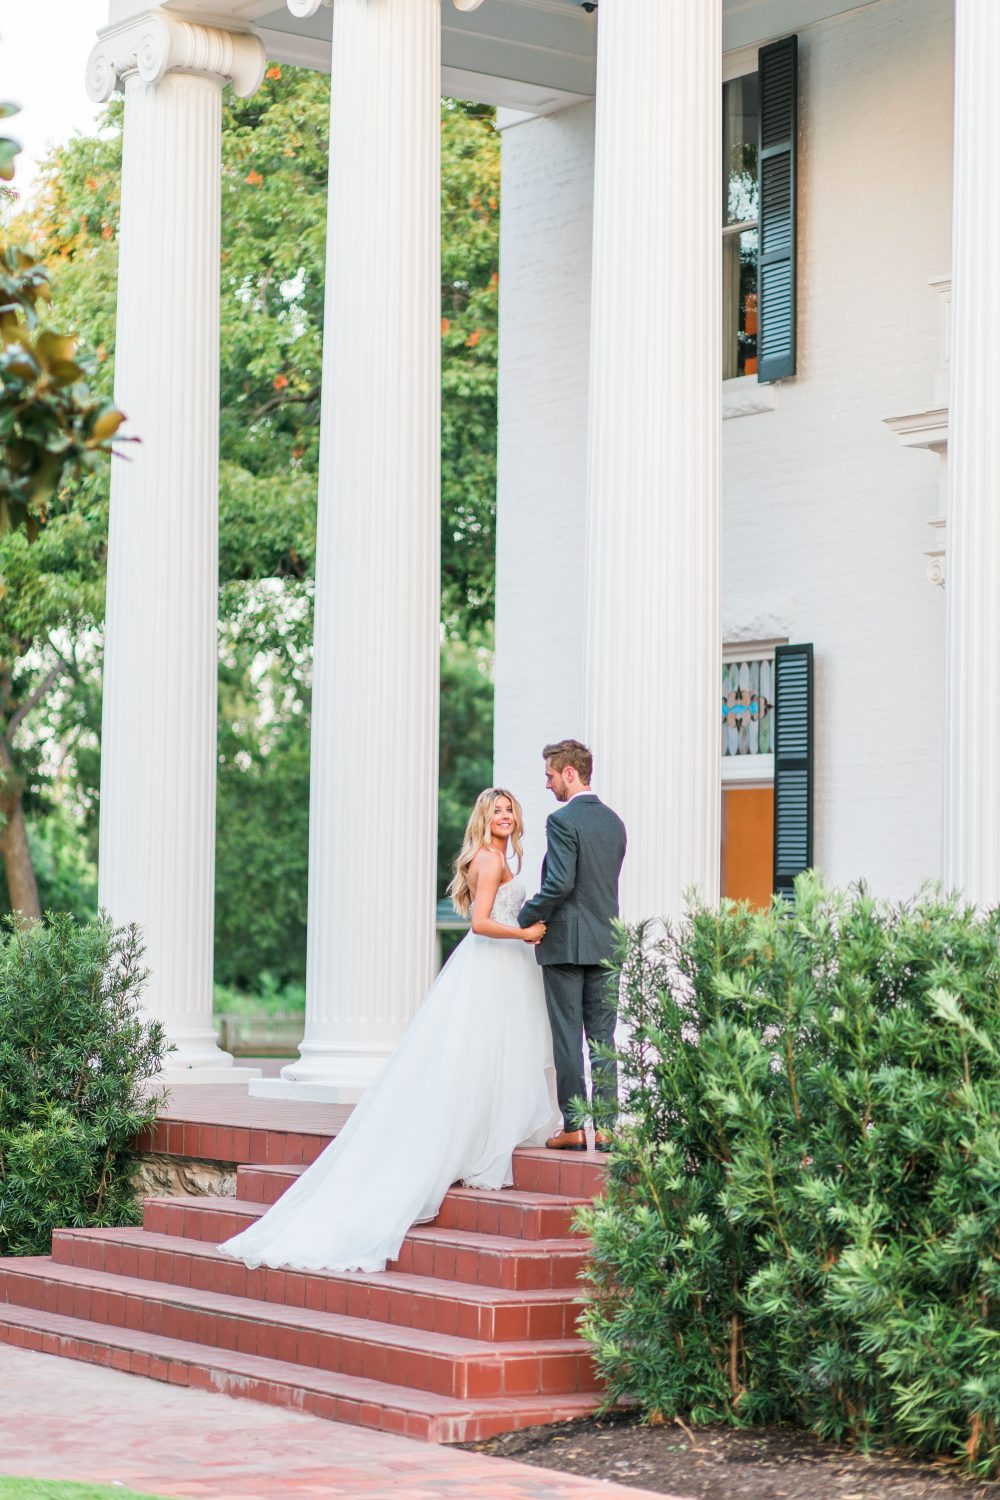 event julep austin wedding planner atx woodbine mansion